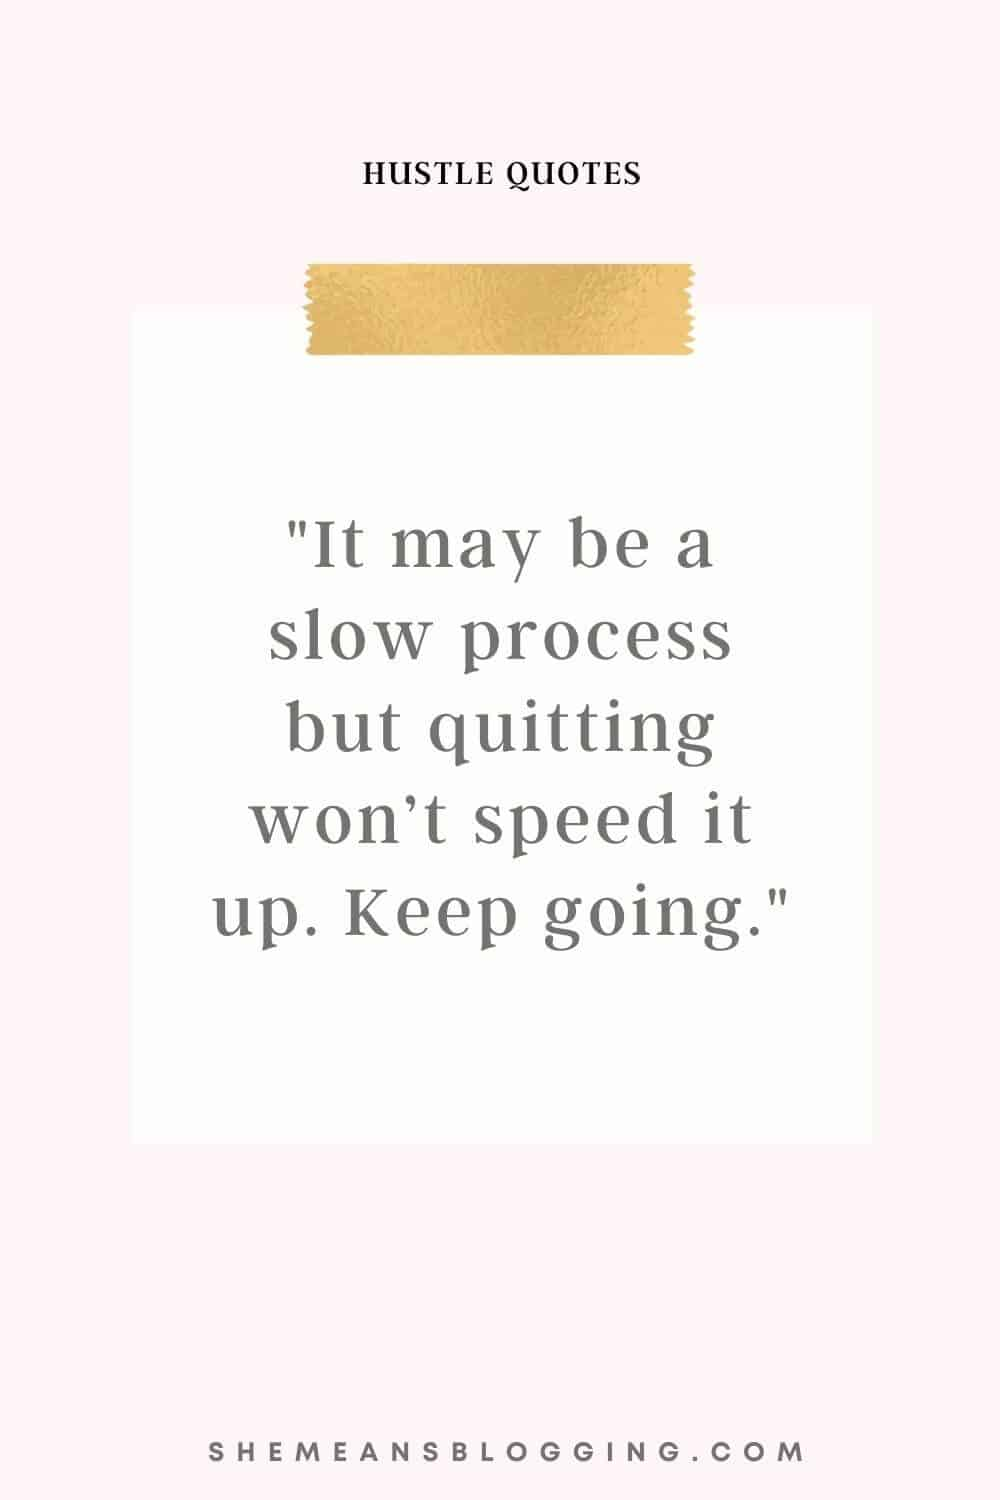 Best hustle quotes for entrepreneurs. It may be a slow process but quitting won't speed it up. Keep going. Motivational quote